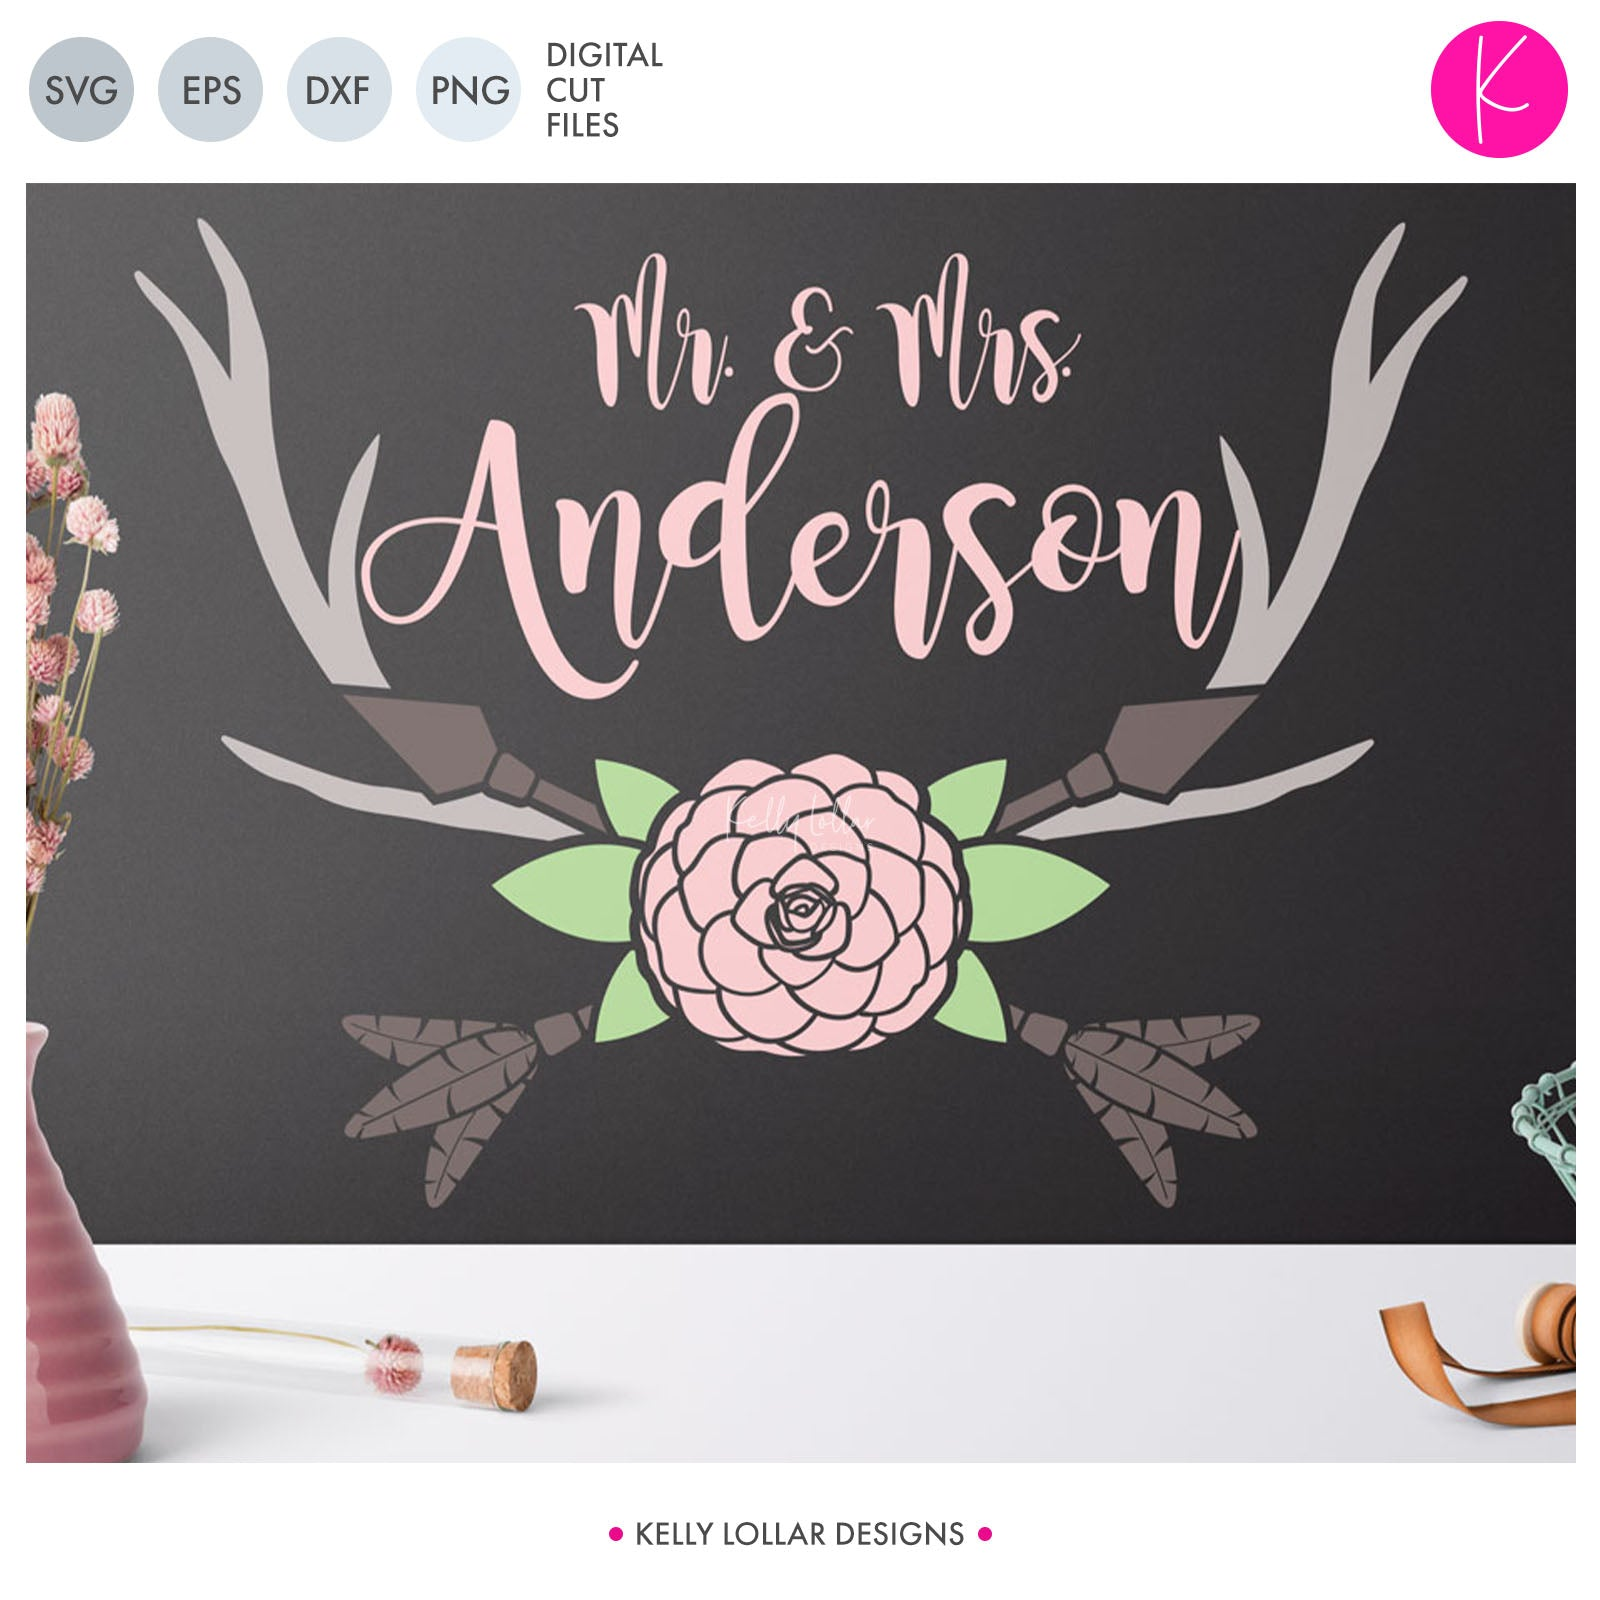 Flower and Arrow Frame | SVG DXF EPS PNG Cut Files Wide Antler Monogram with Camilla Flower, Leaves and Feather Tipped Crossed Arrows | SVG DXF EPS PNG Cut Files  This flower and arrow antler monogram svg has so many applications!